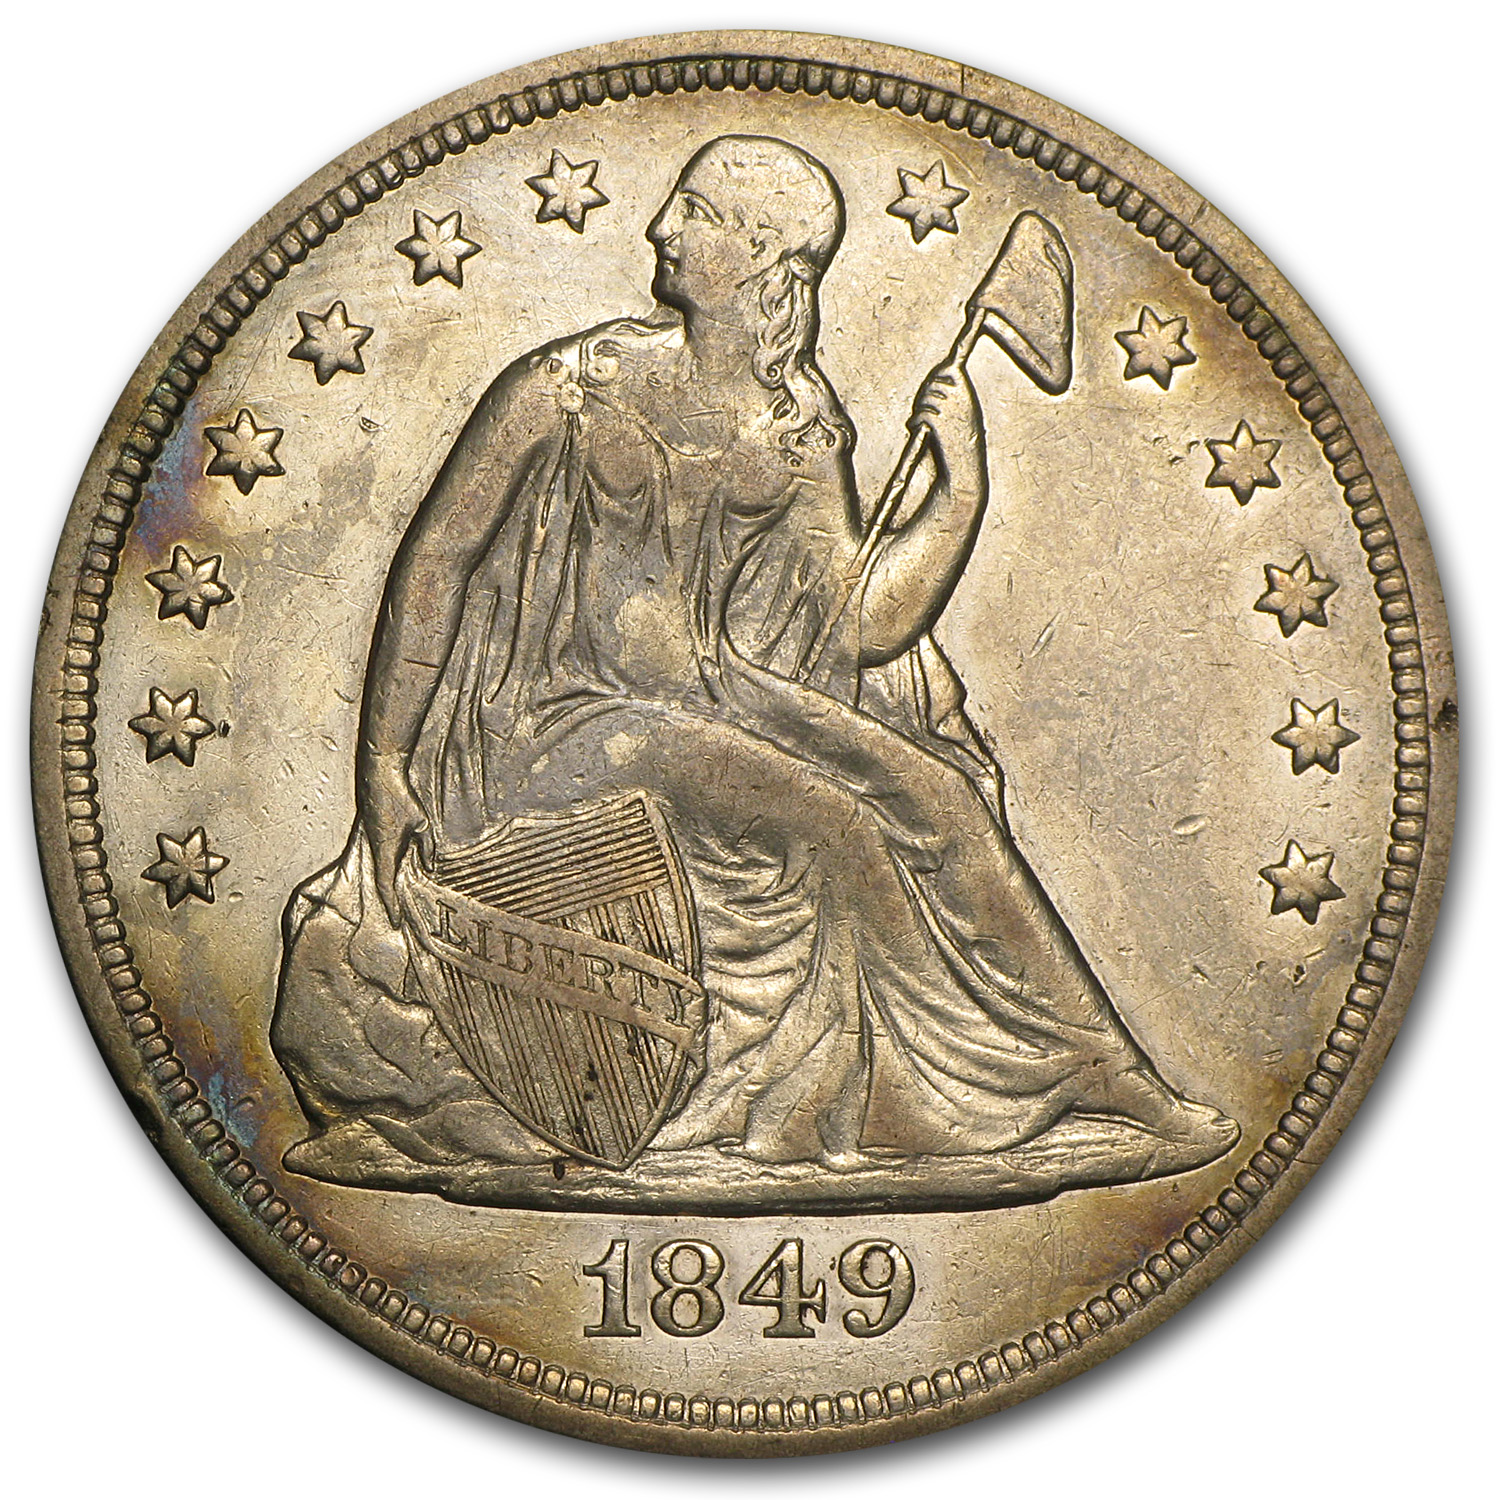 1849 Liberty Seated Dollar - Extra Fine